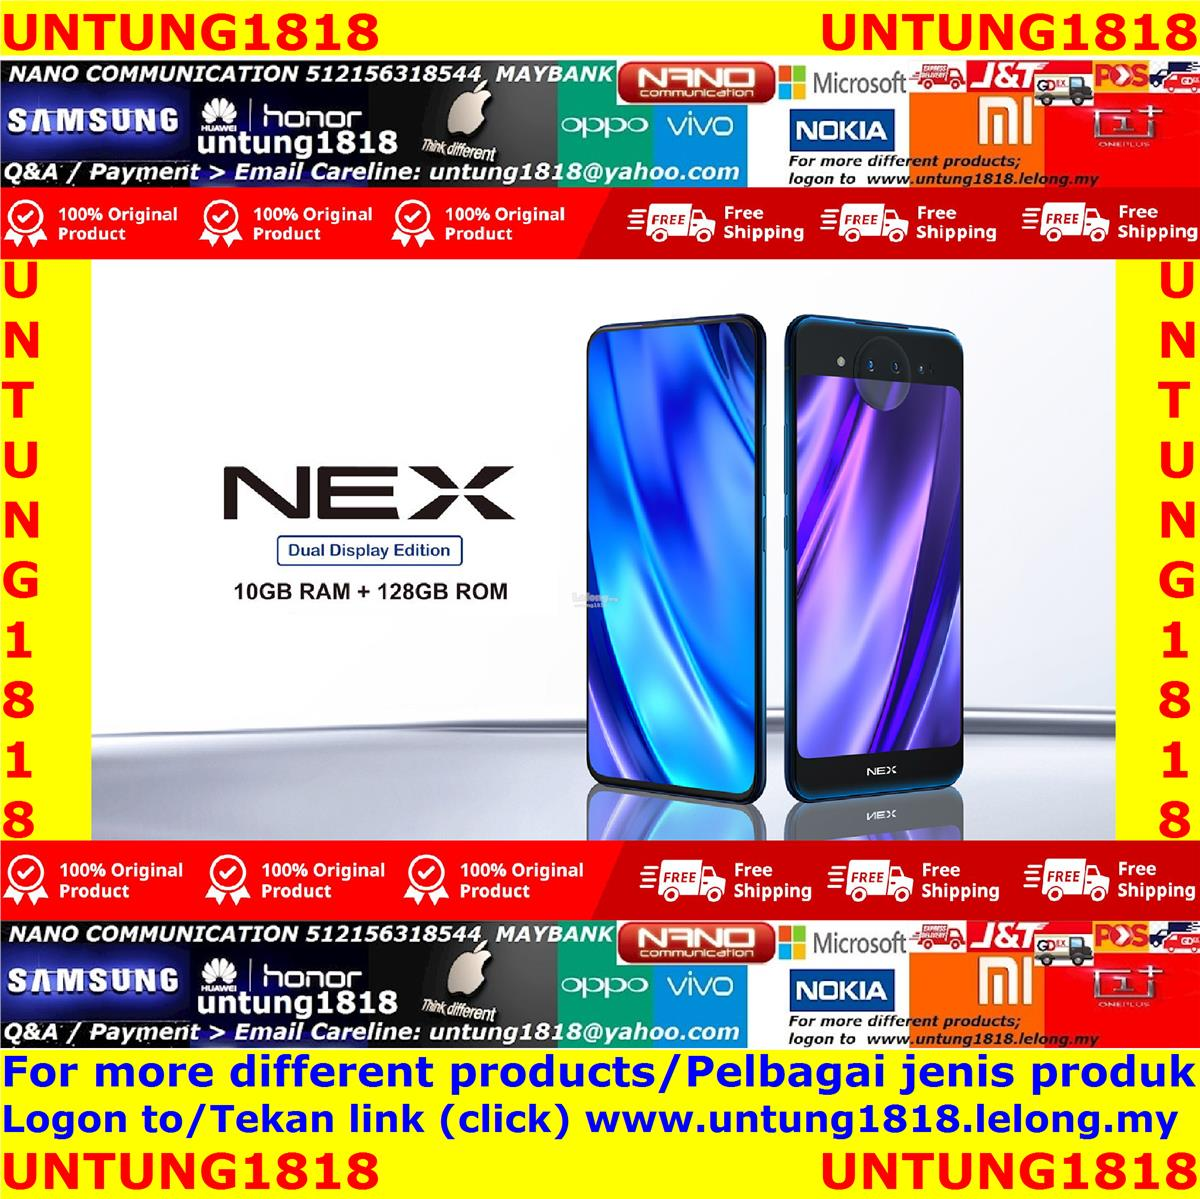 vivo V15 Pro V15 V11 V11i V9 vivo NEX Dual Display vivo S1 ORIGINAL